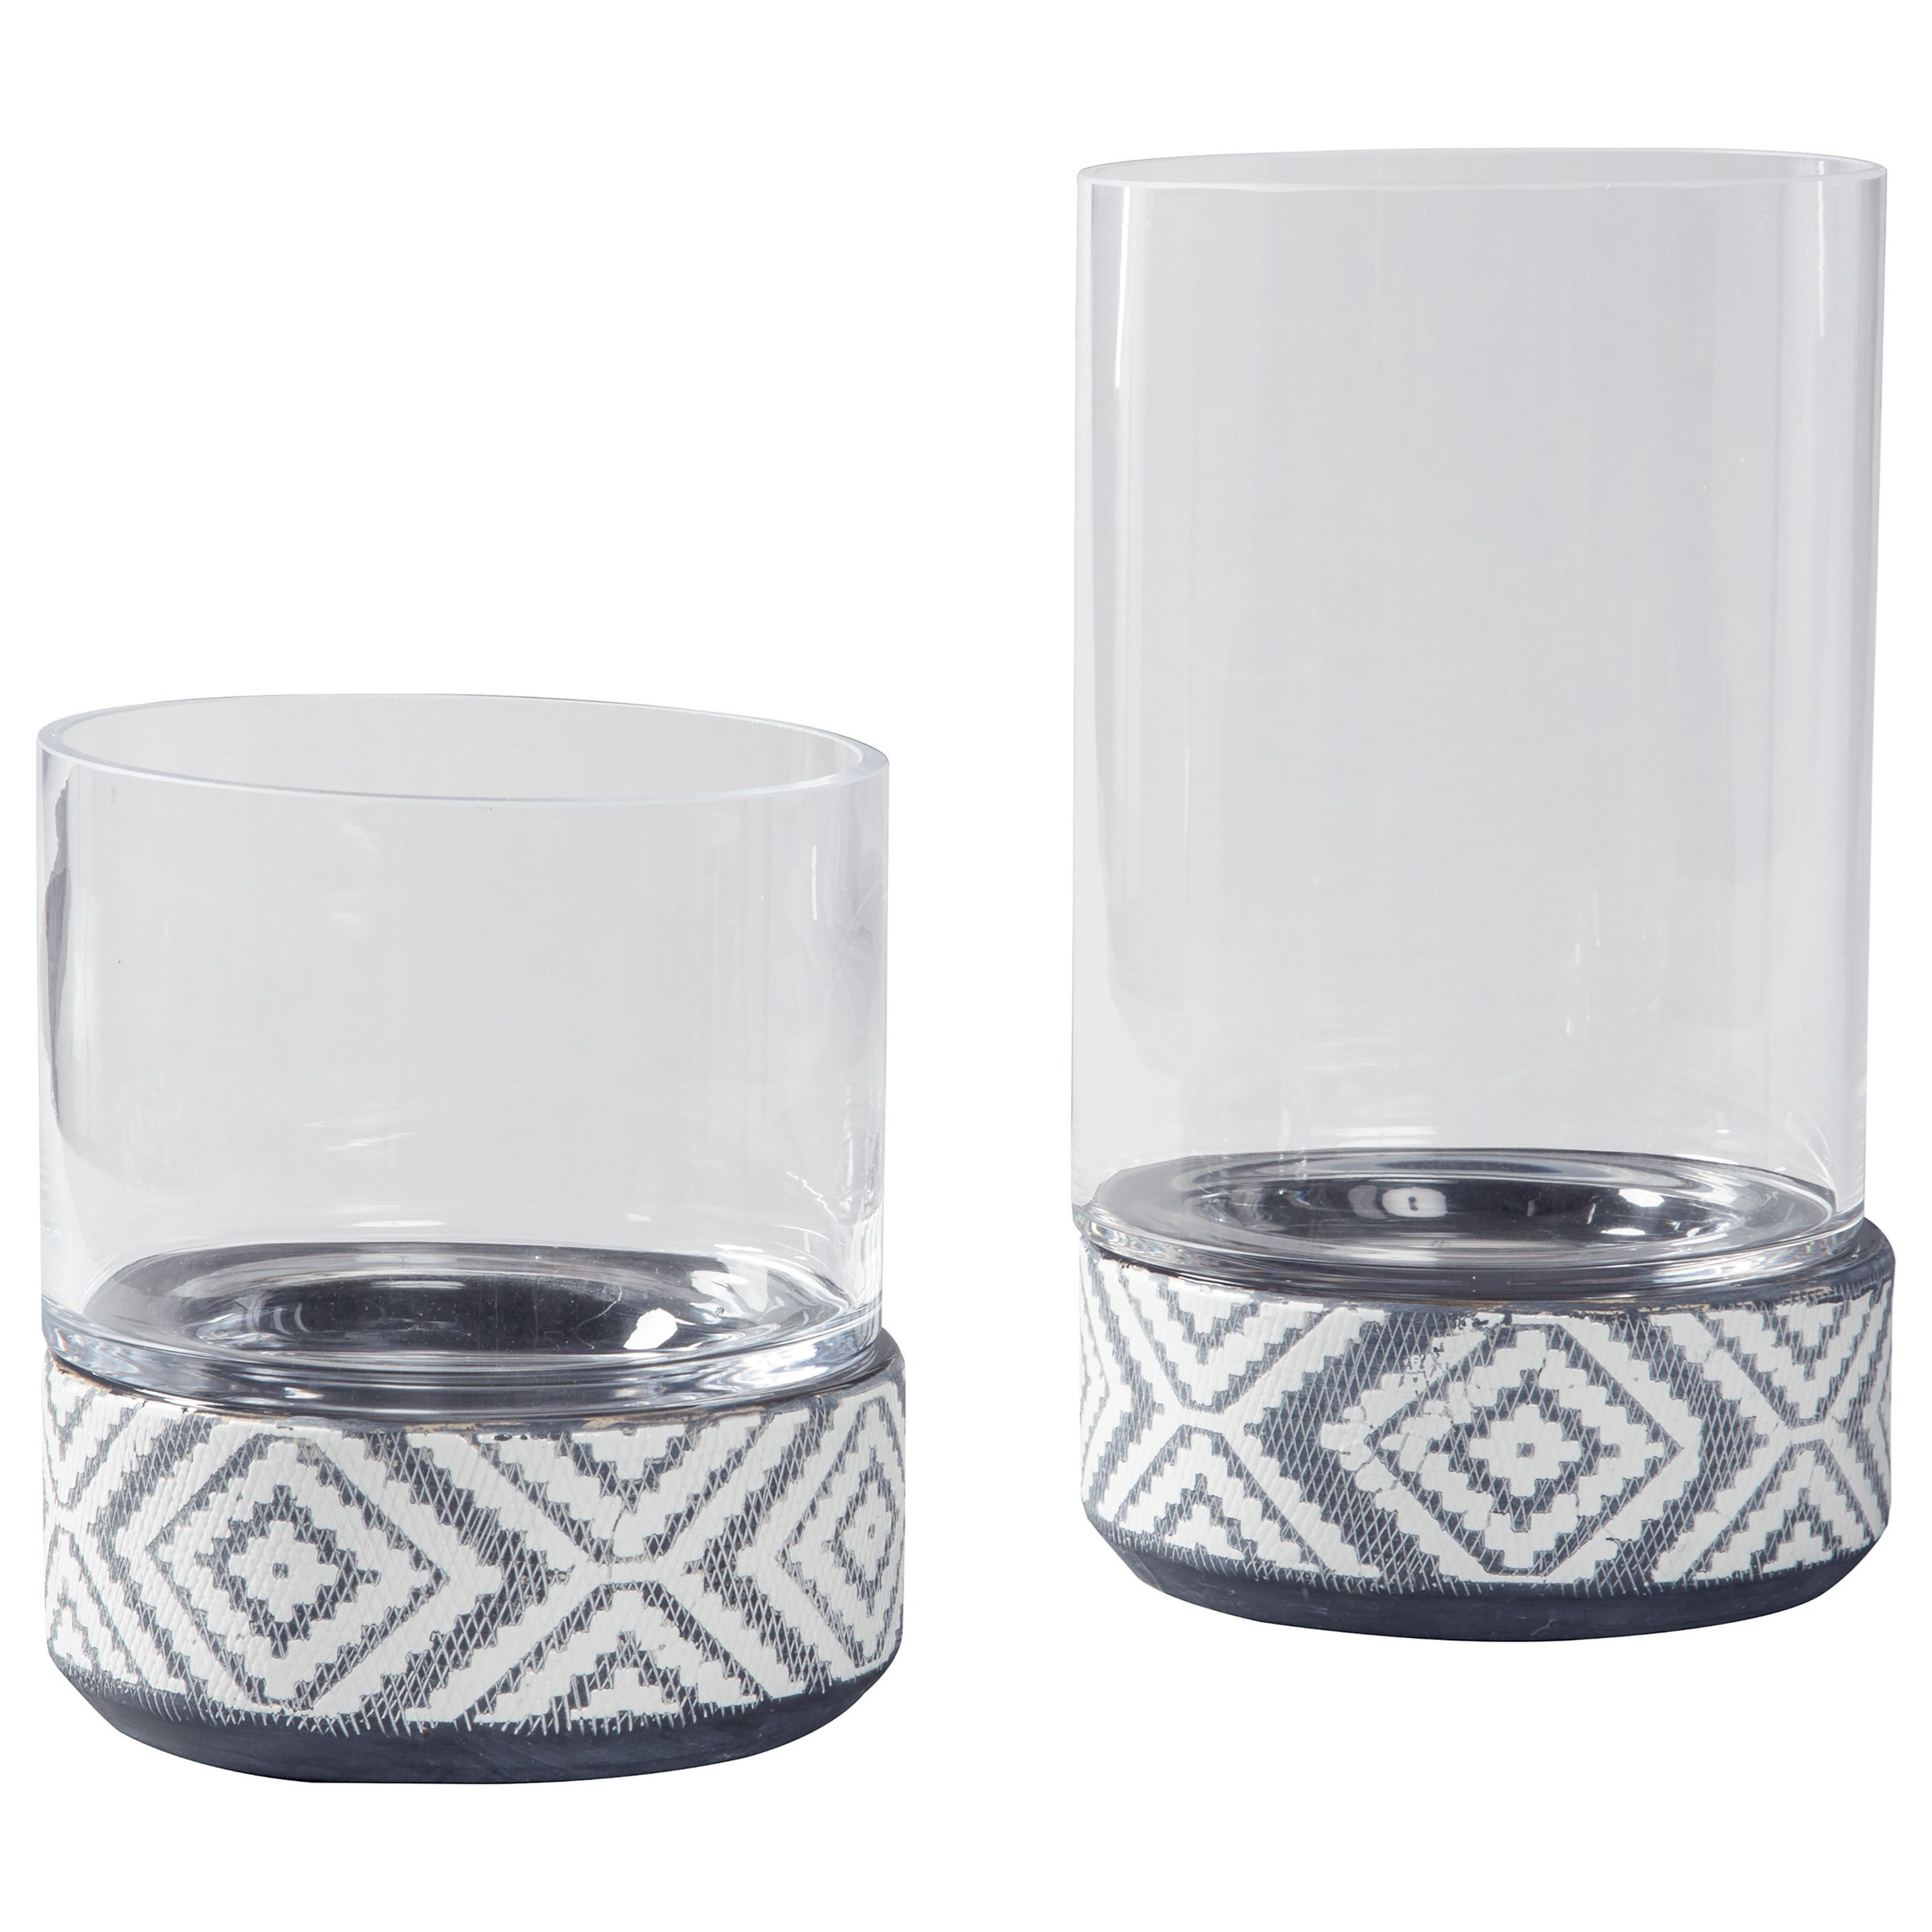 Accents Dornitilla Black/White Candle Holder Set by Signature Design by Ashley at Coconis Furniture & Mattress 1st